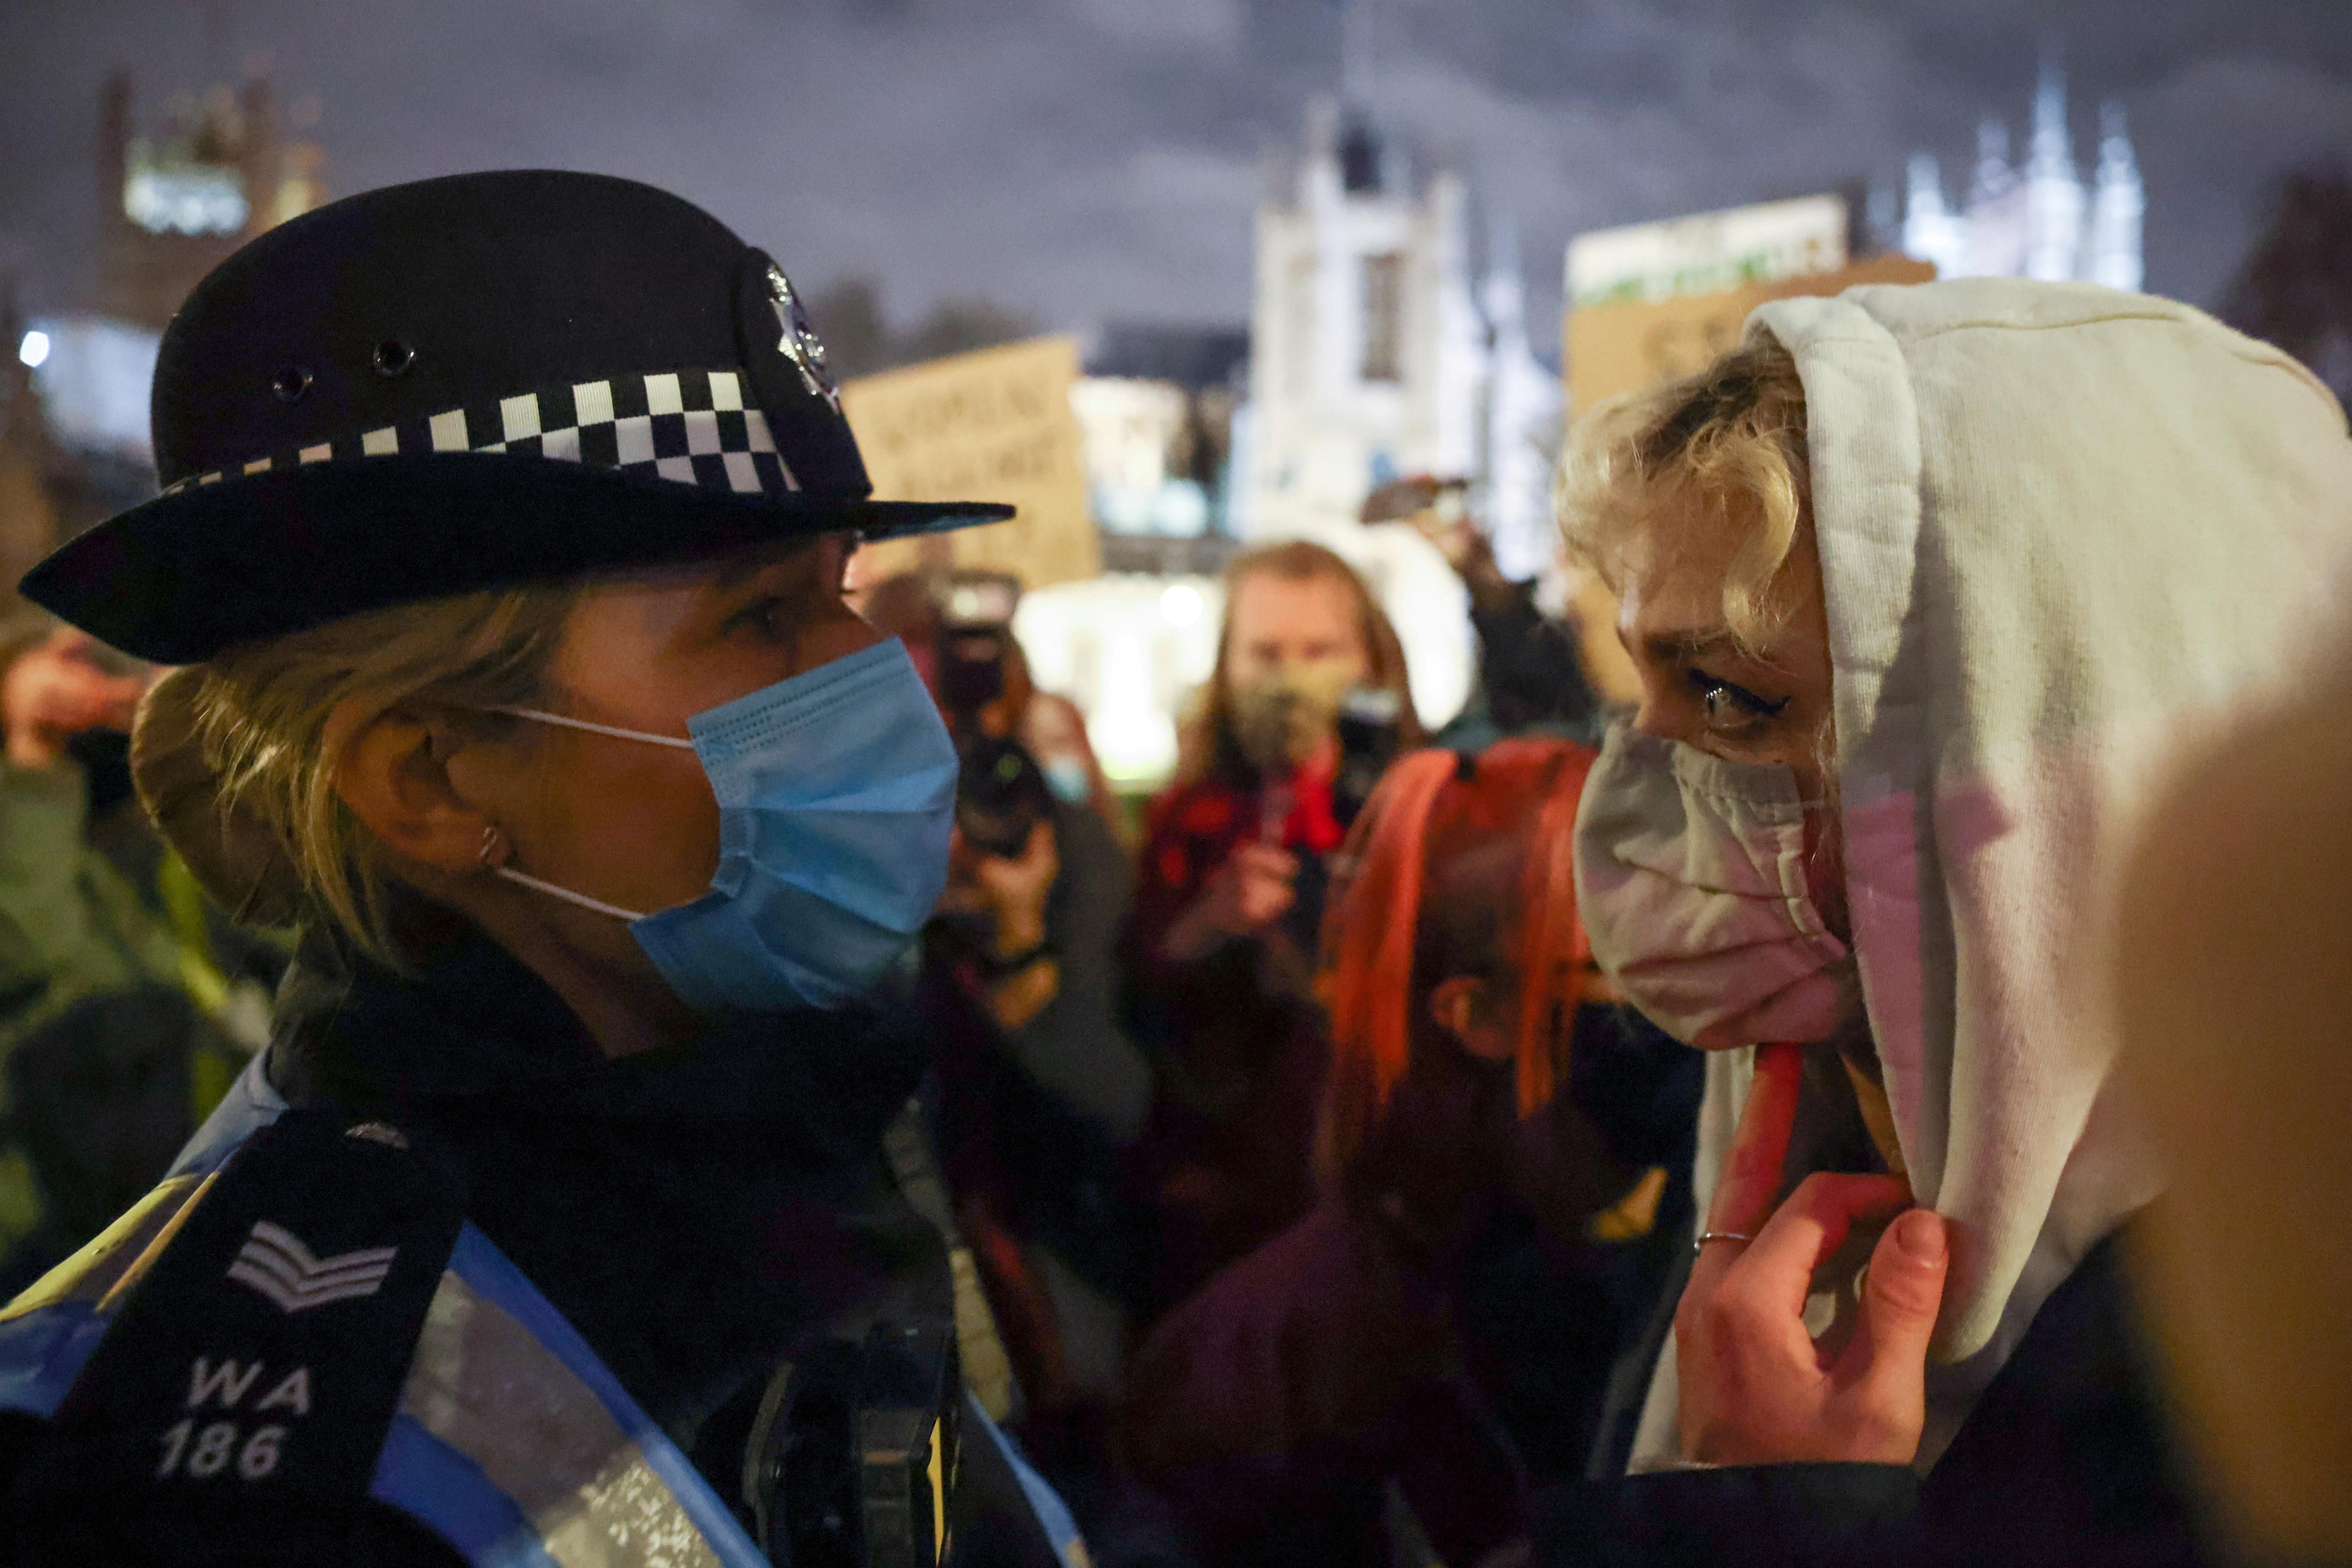 A person stands in front of a police officer at the Parliament Square, following the kidnap and murder of Sarah Everard, in London, Britain March 14, 2021.